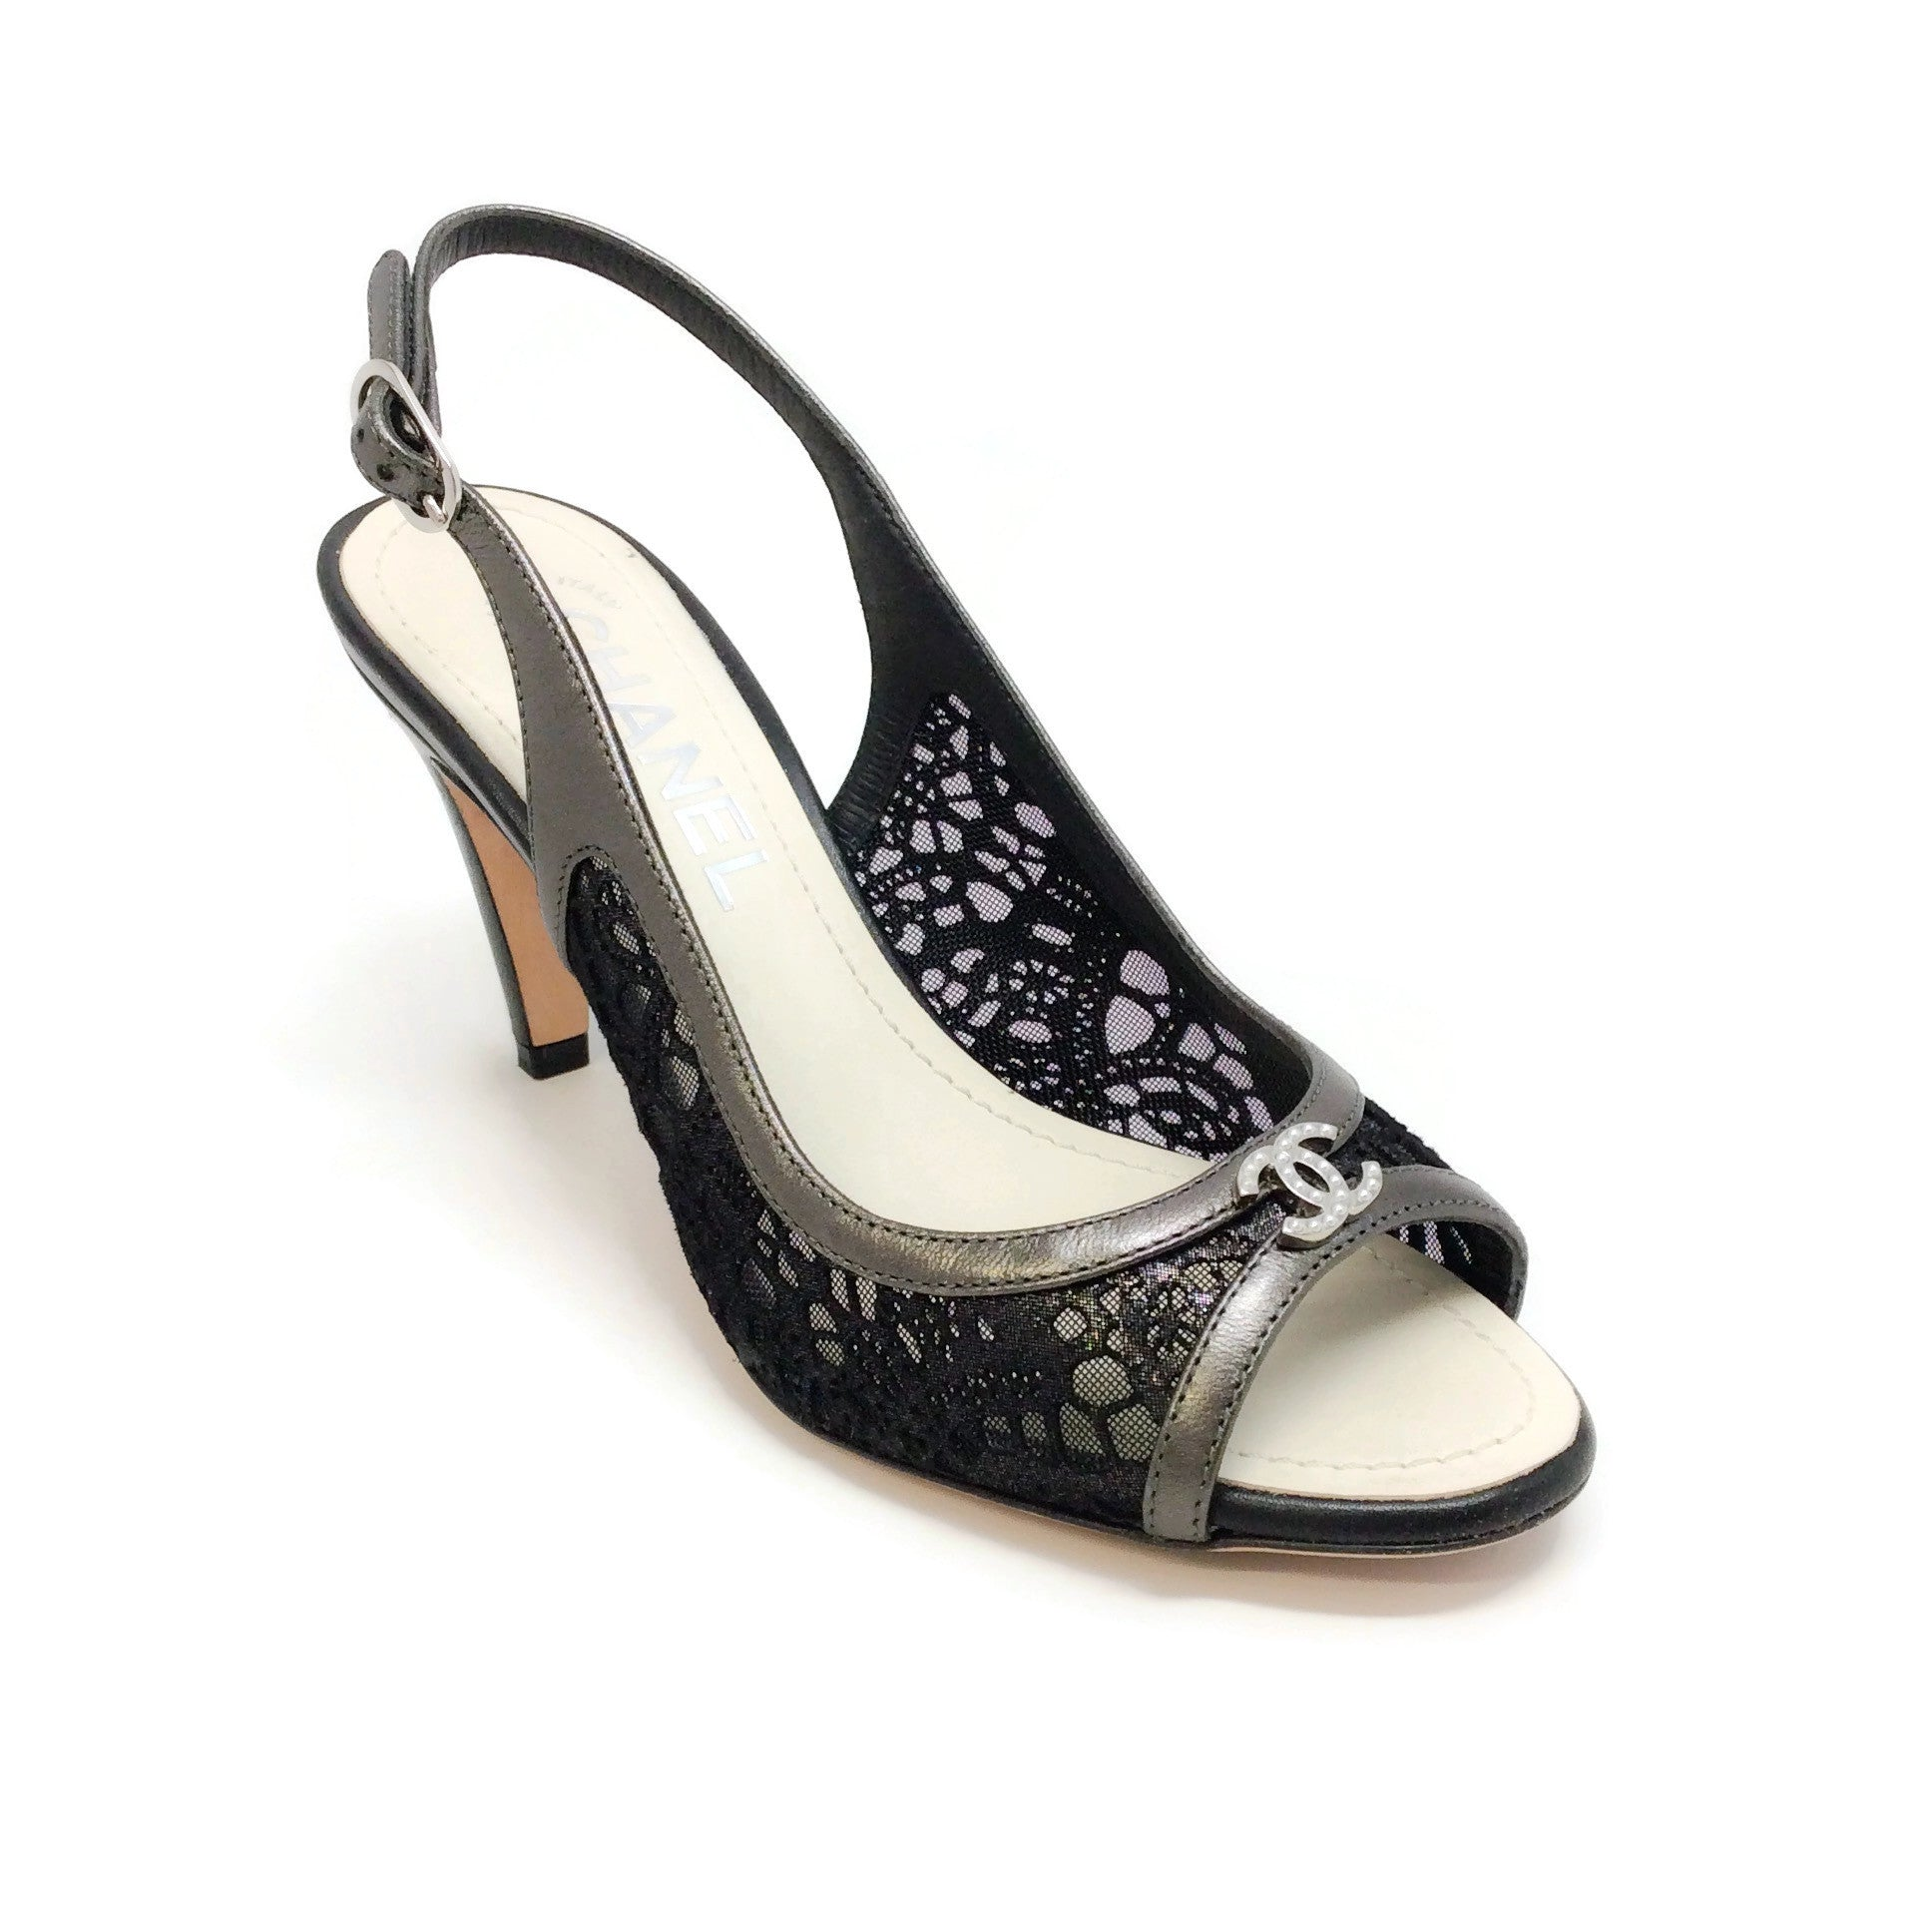 Chanel Black Laser Cut Lace Peep Toe Pumps